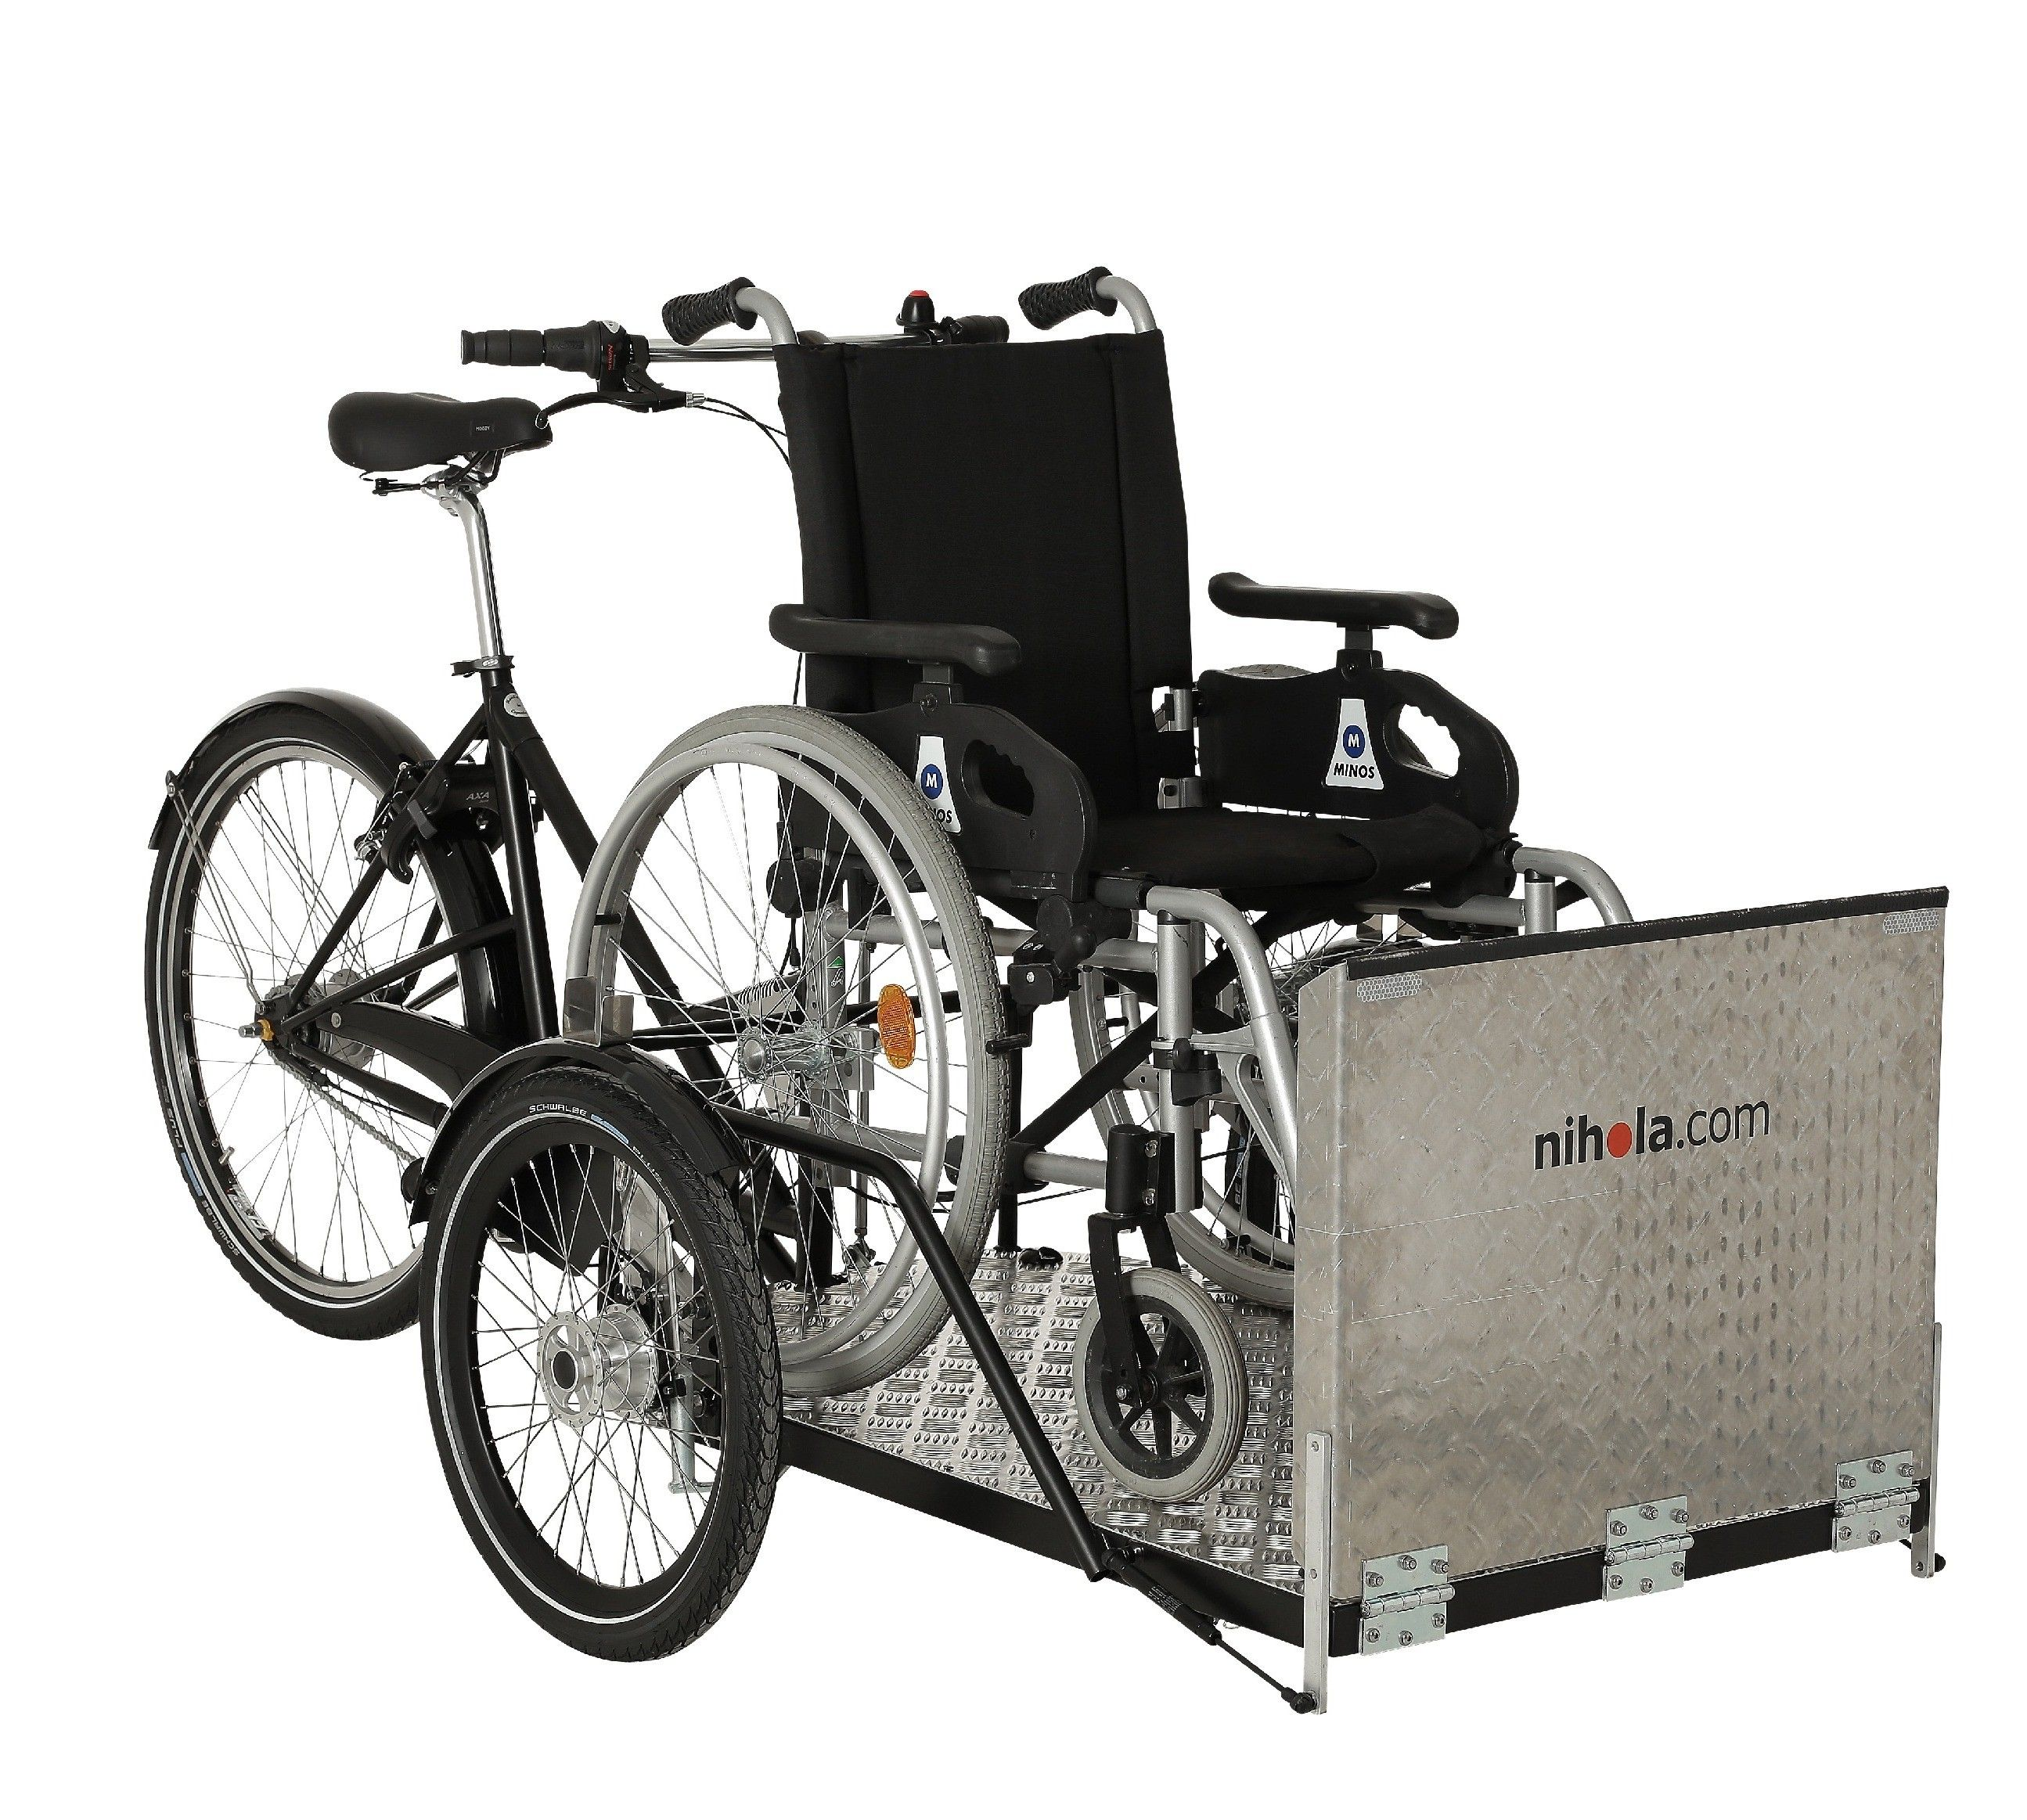 Flex a safe and lightweight cargo bike for riding with